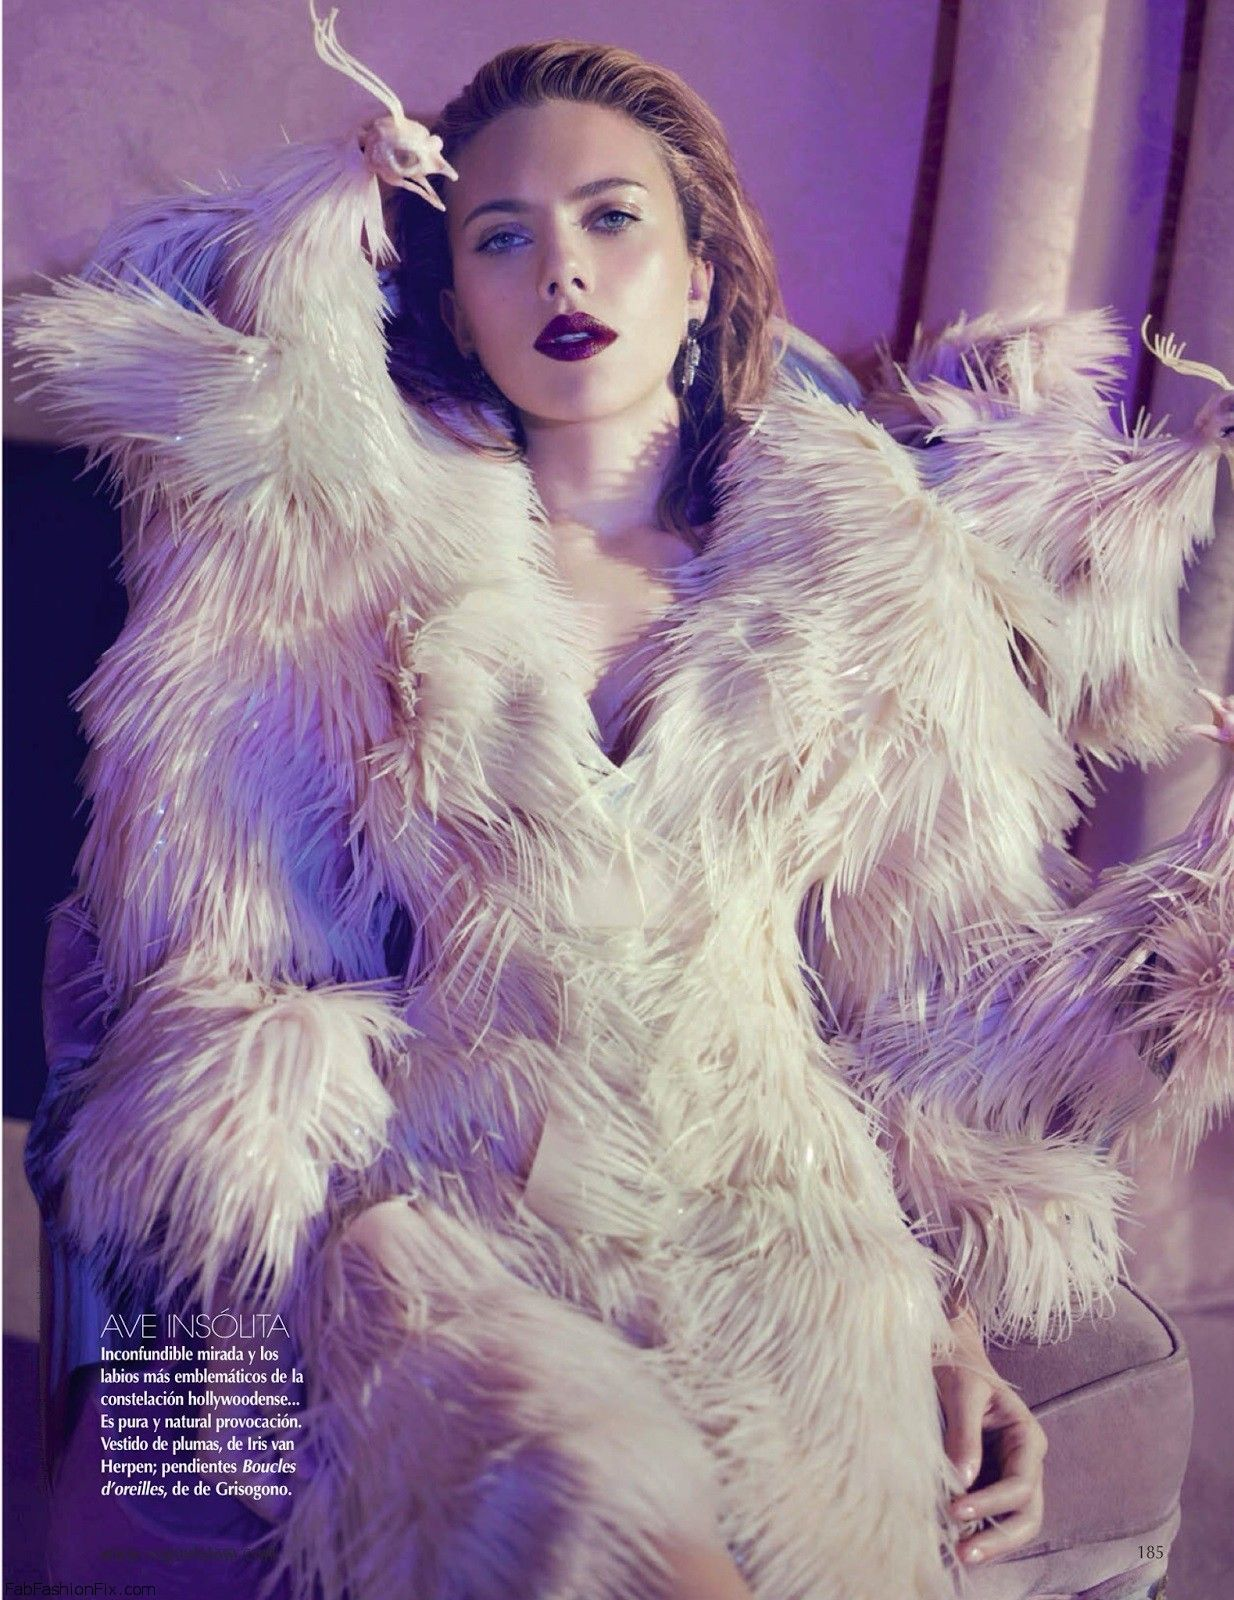 fashion_scans_remastered-scarlett_johansson-vogue_mexico-december_2013-scanned_by_vampirehorde-hq-3